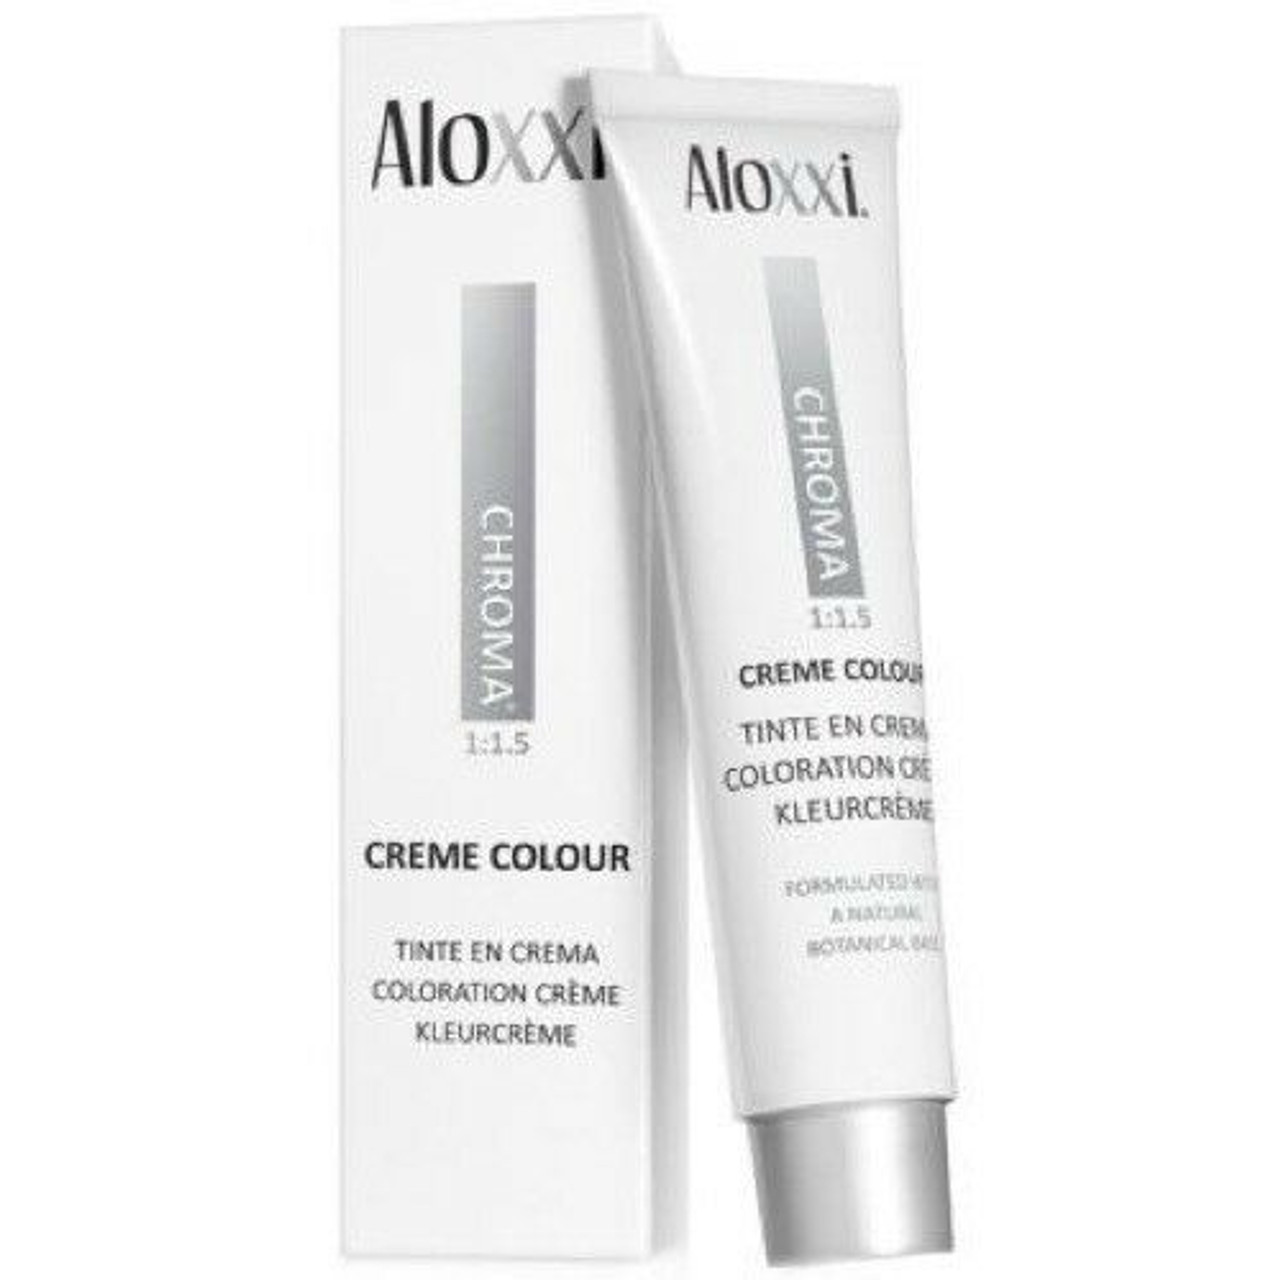 Aloxxi Creme Color tube and box